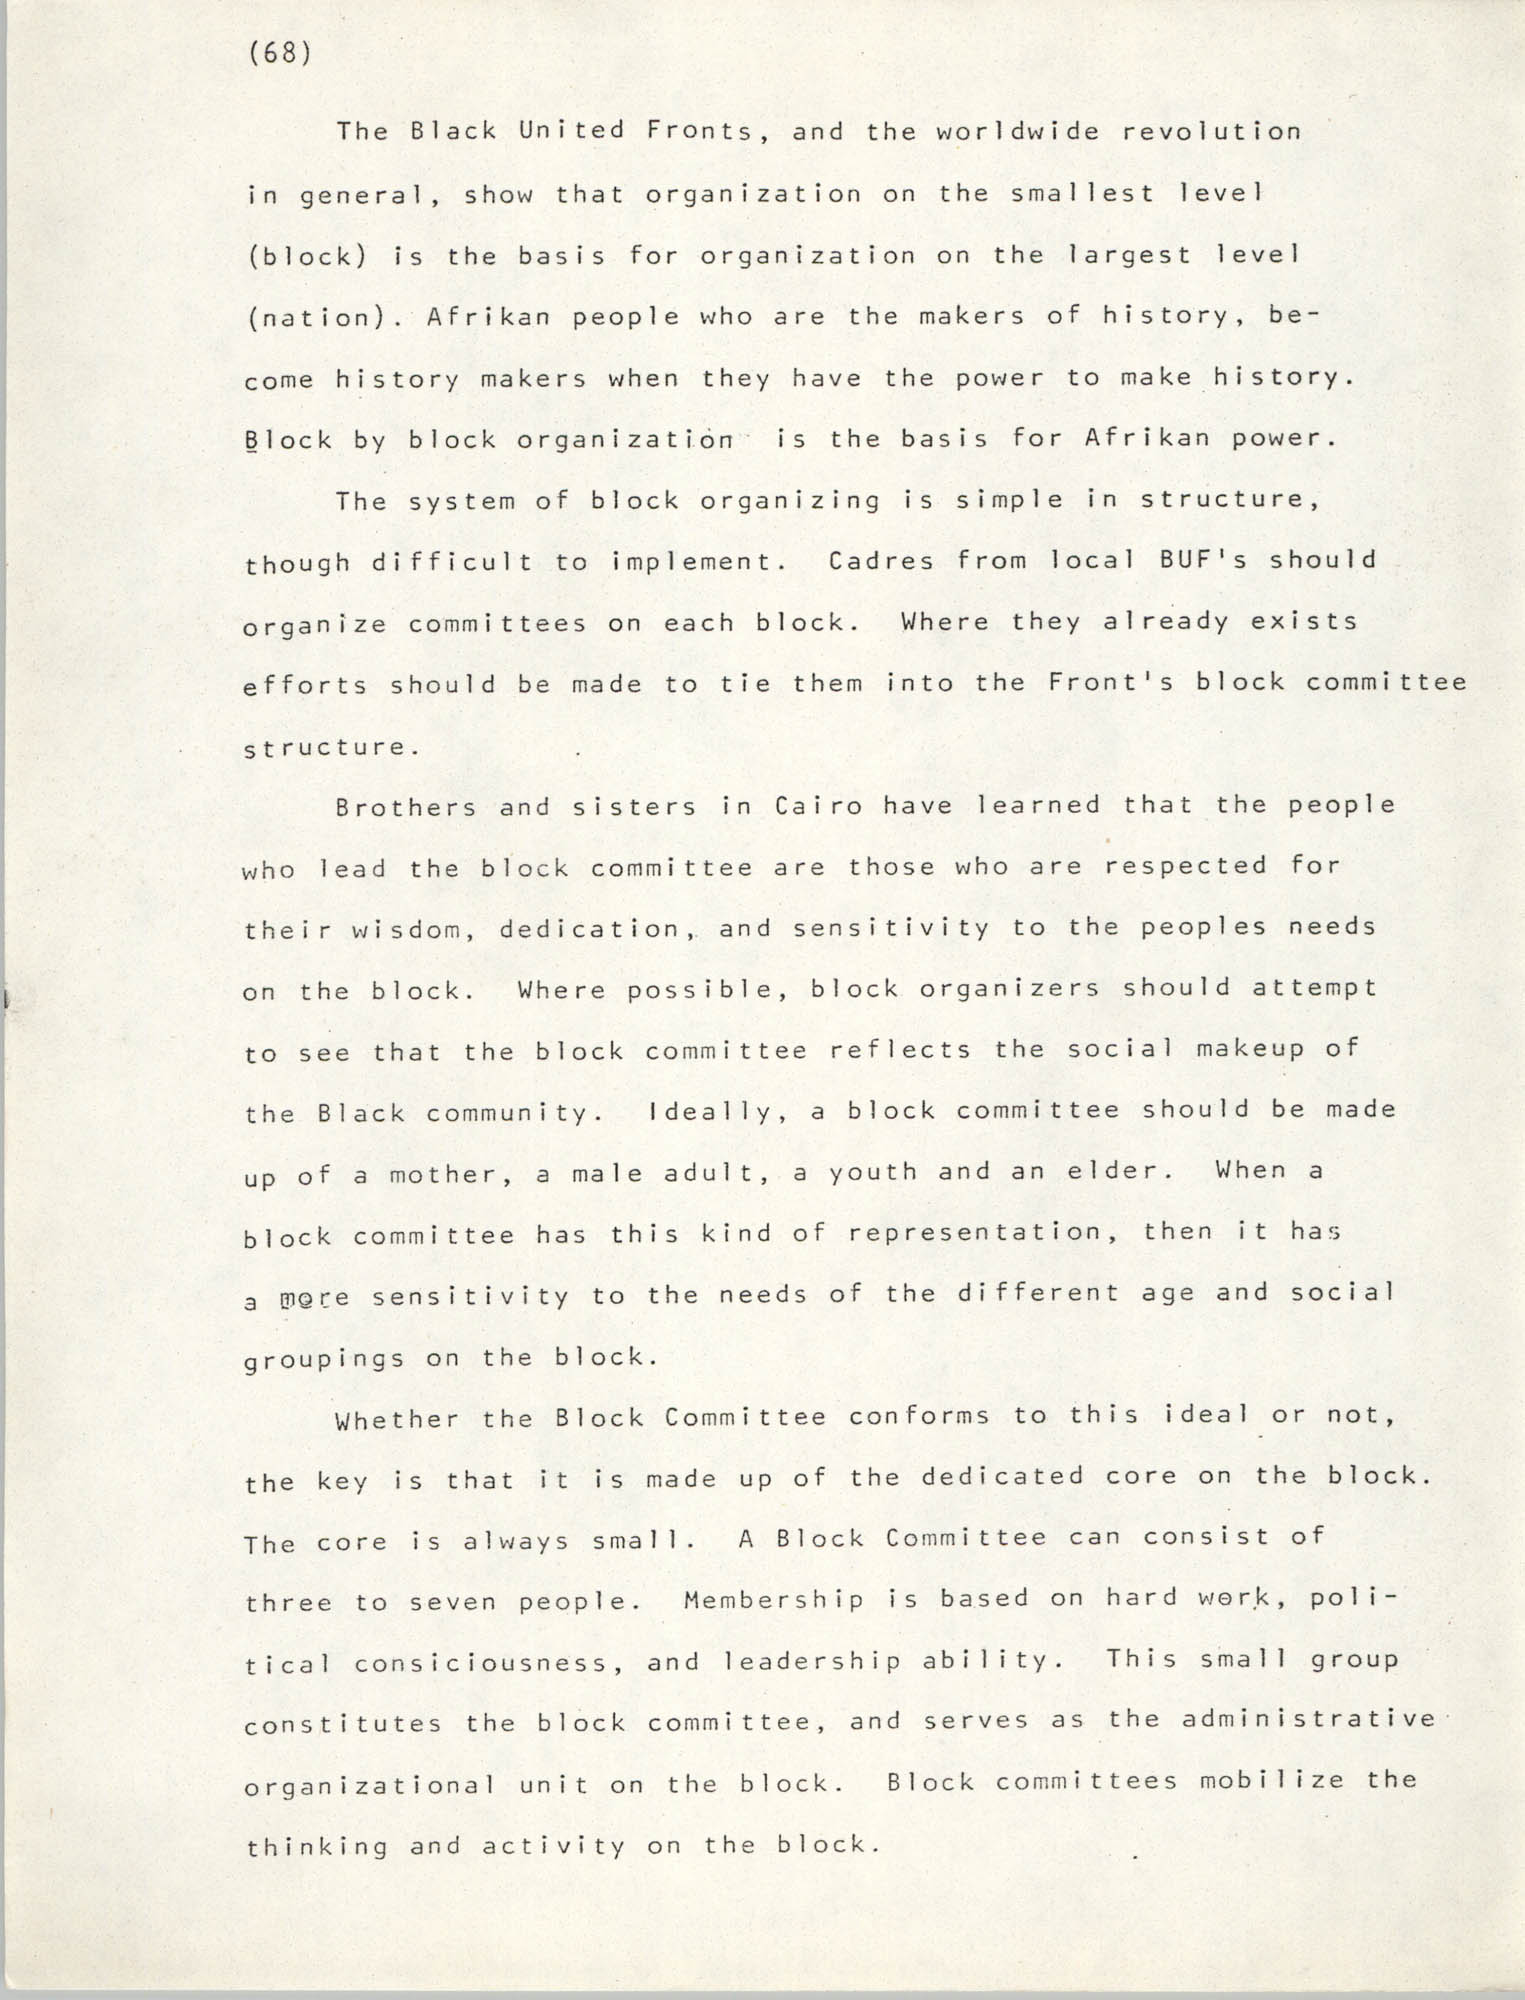 Pan-African Committee of the Black United Front, Page 68